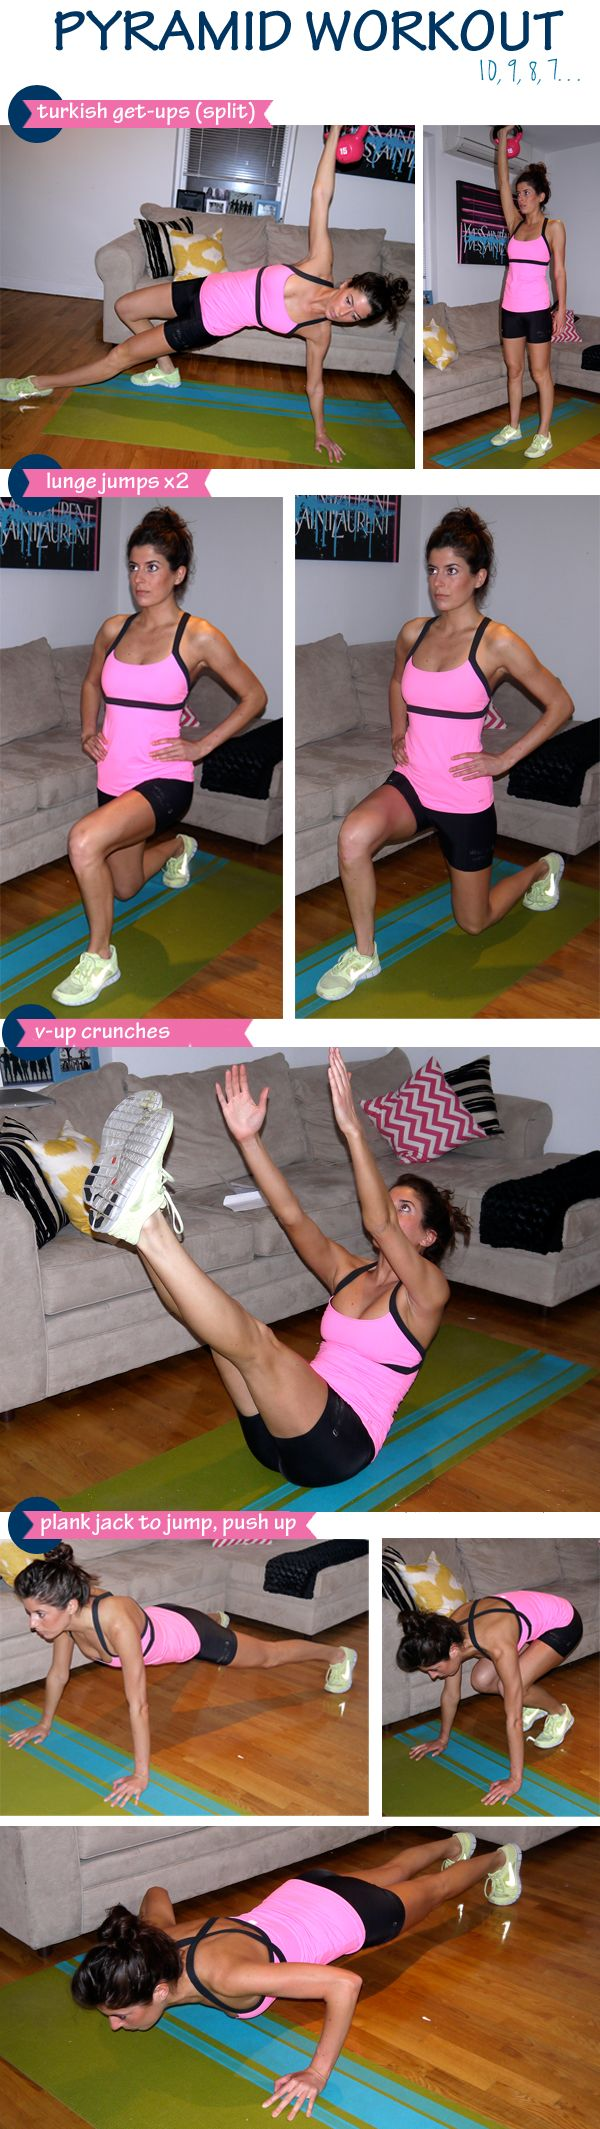 Tough pyramid workout of turkish get-ups, v-up crunches, jump lunges, and plank jump-jack push-ups.